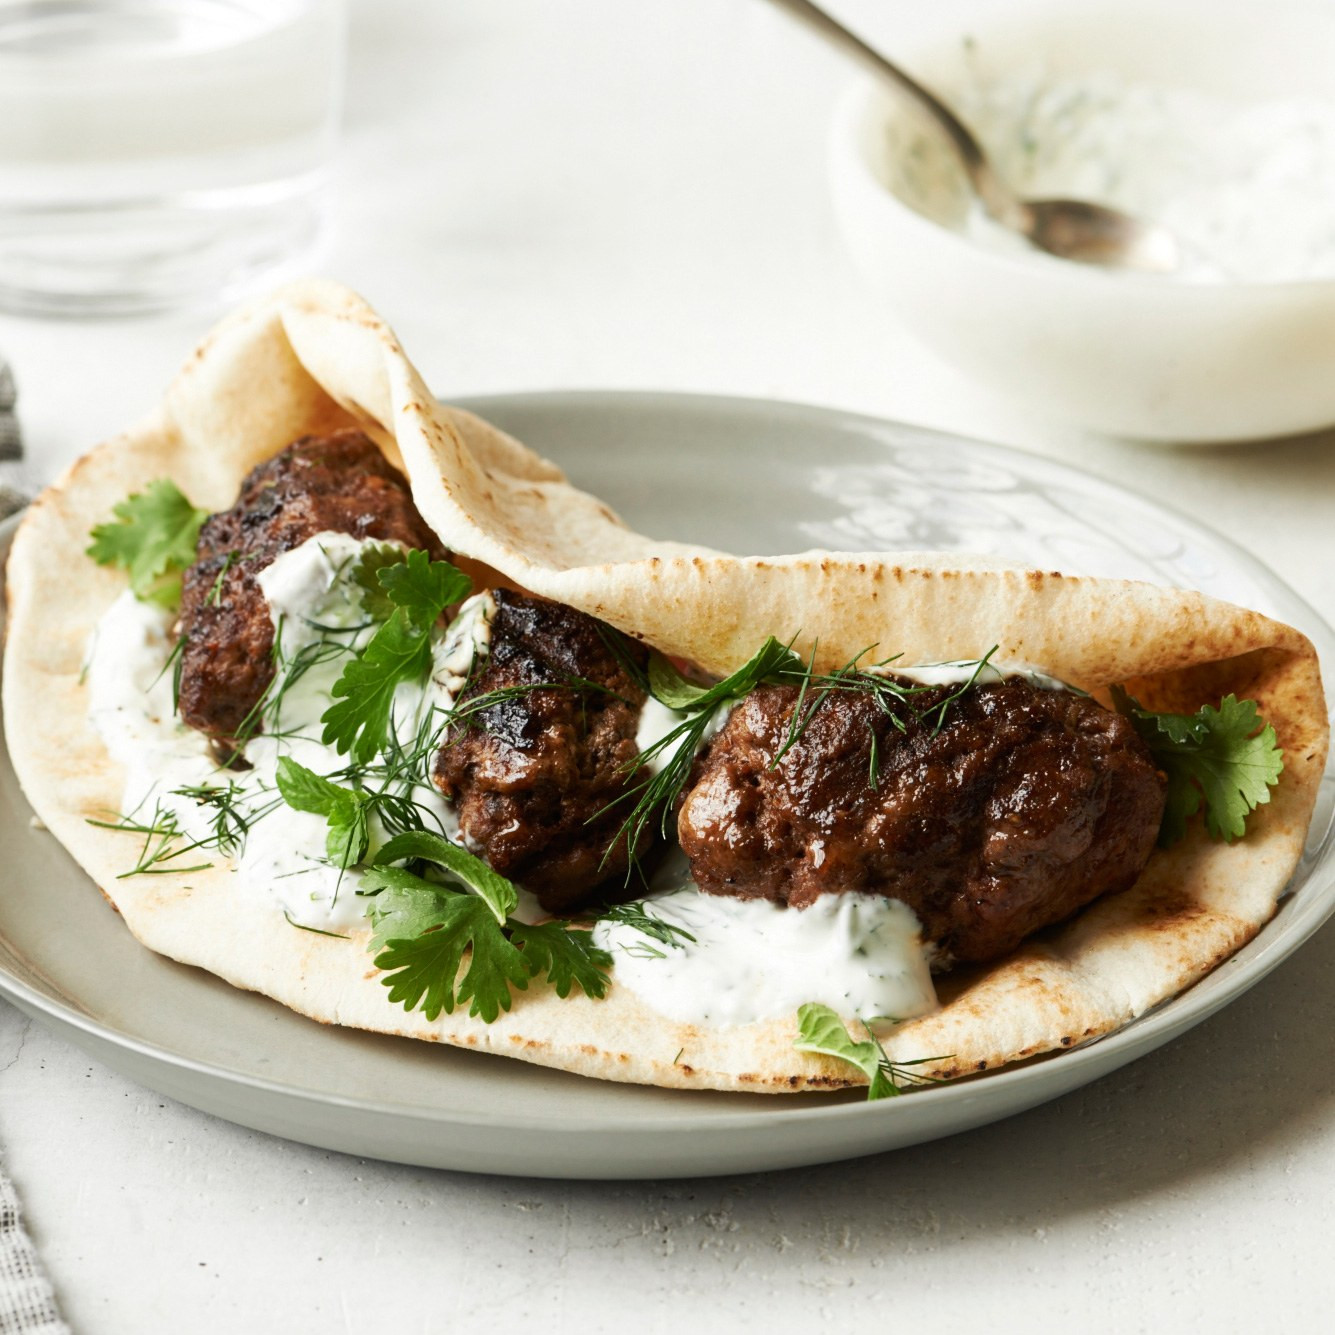 Middle Eastern Ground Lamb Recipes  Spiced Middle Eastern Lamb Patties with Pita and Yogurt